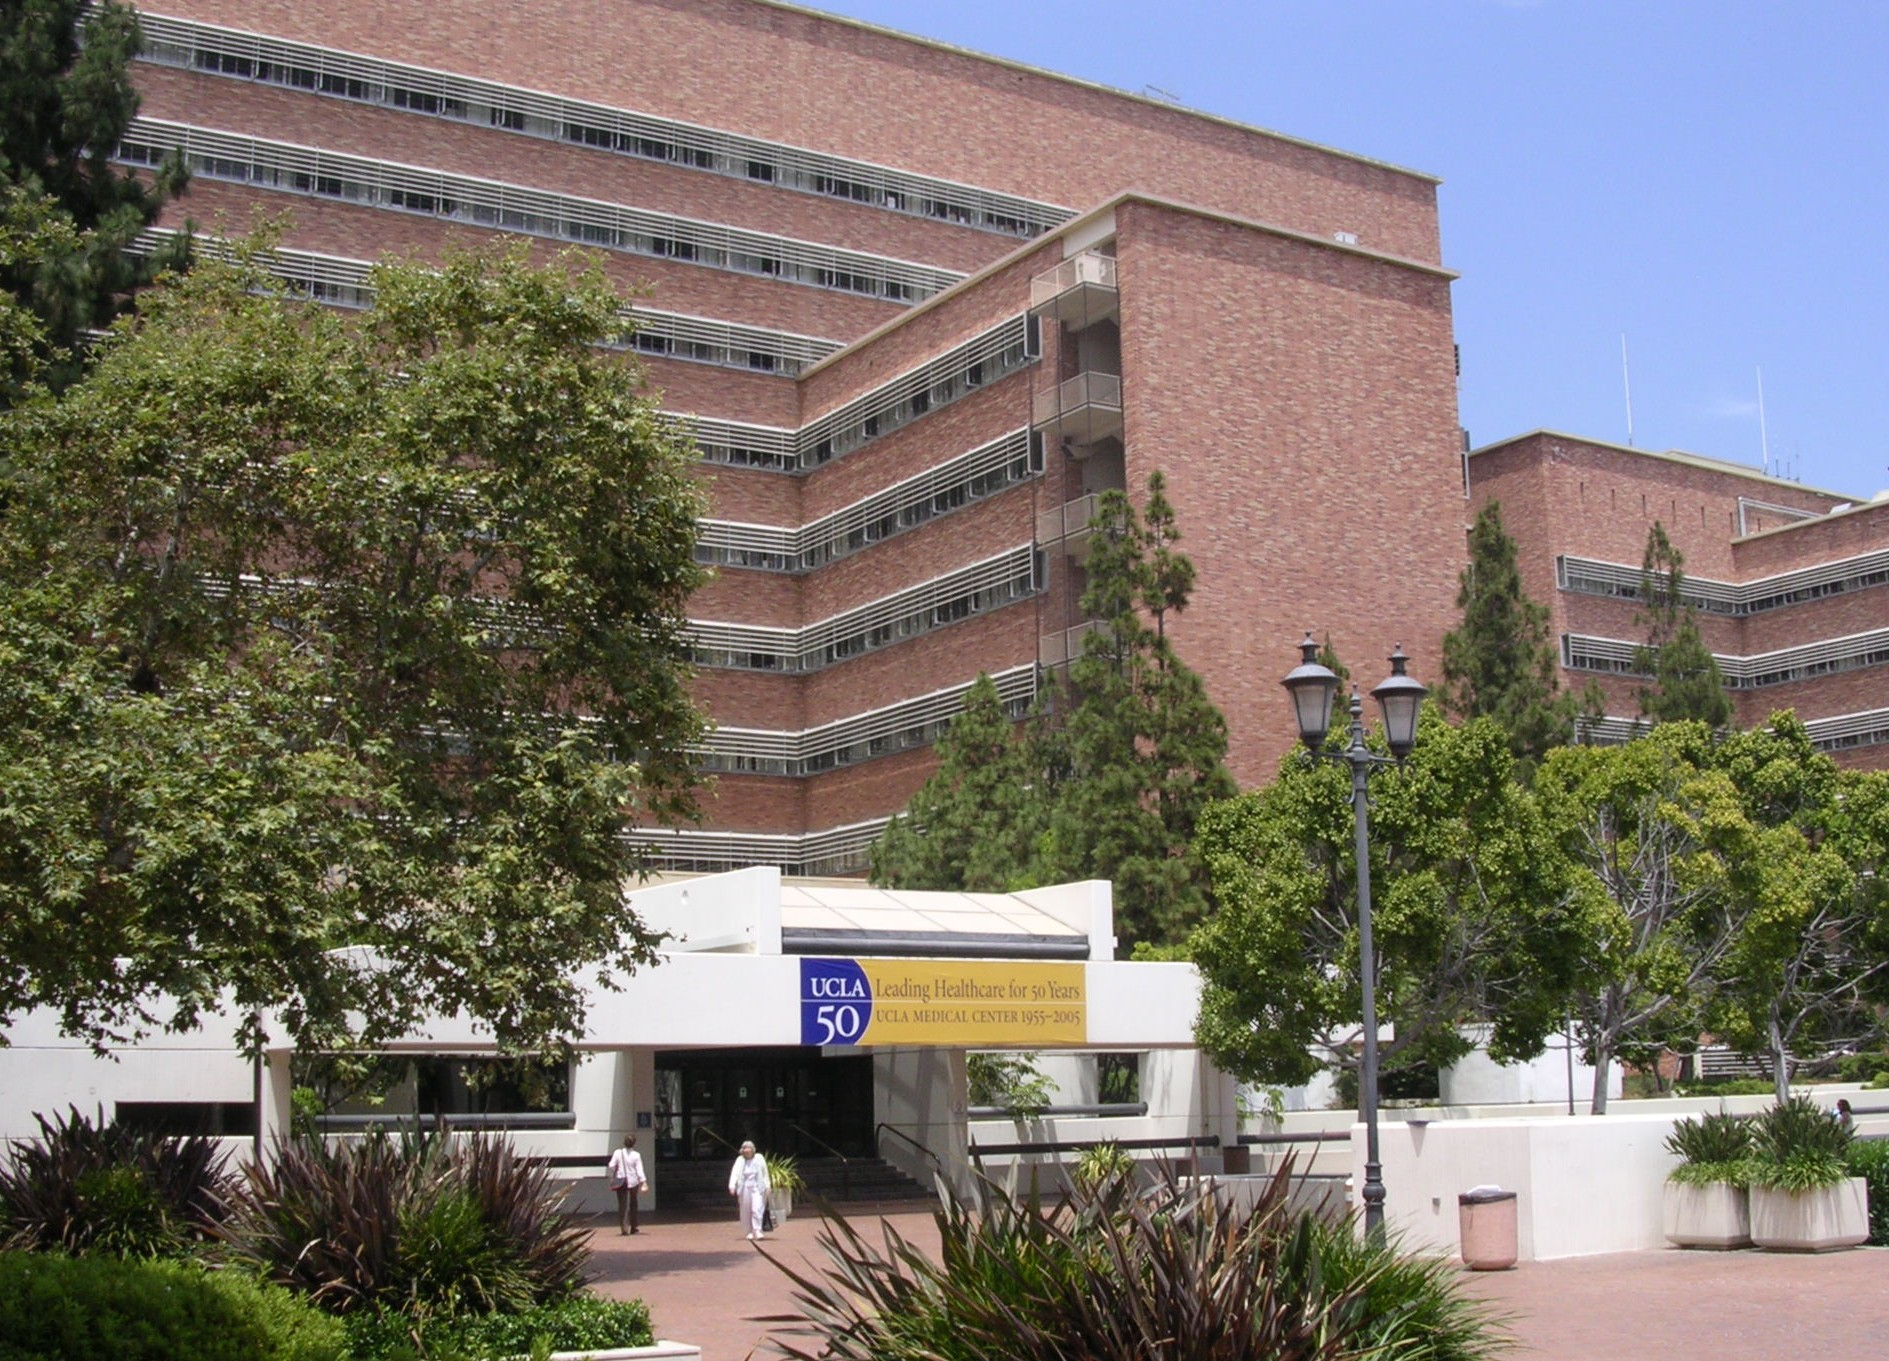 UCLA Campus Map: Center for Health Sciences